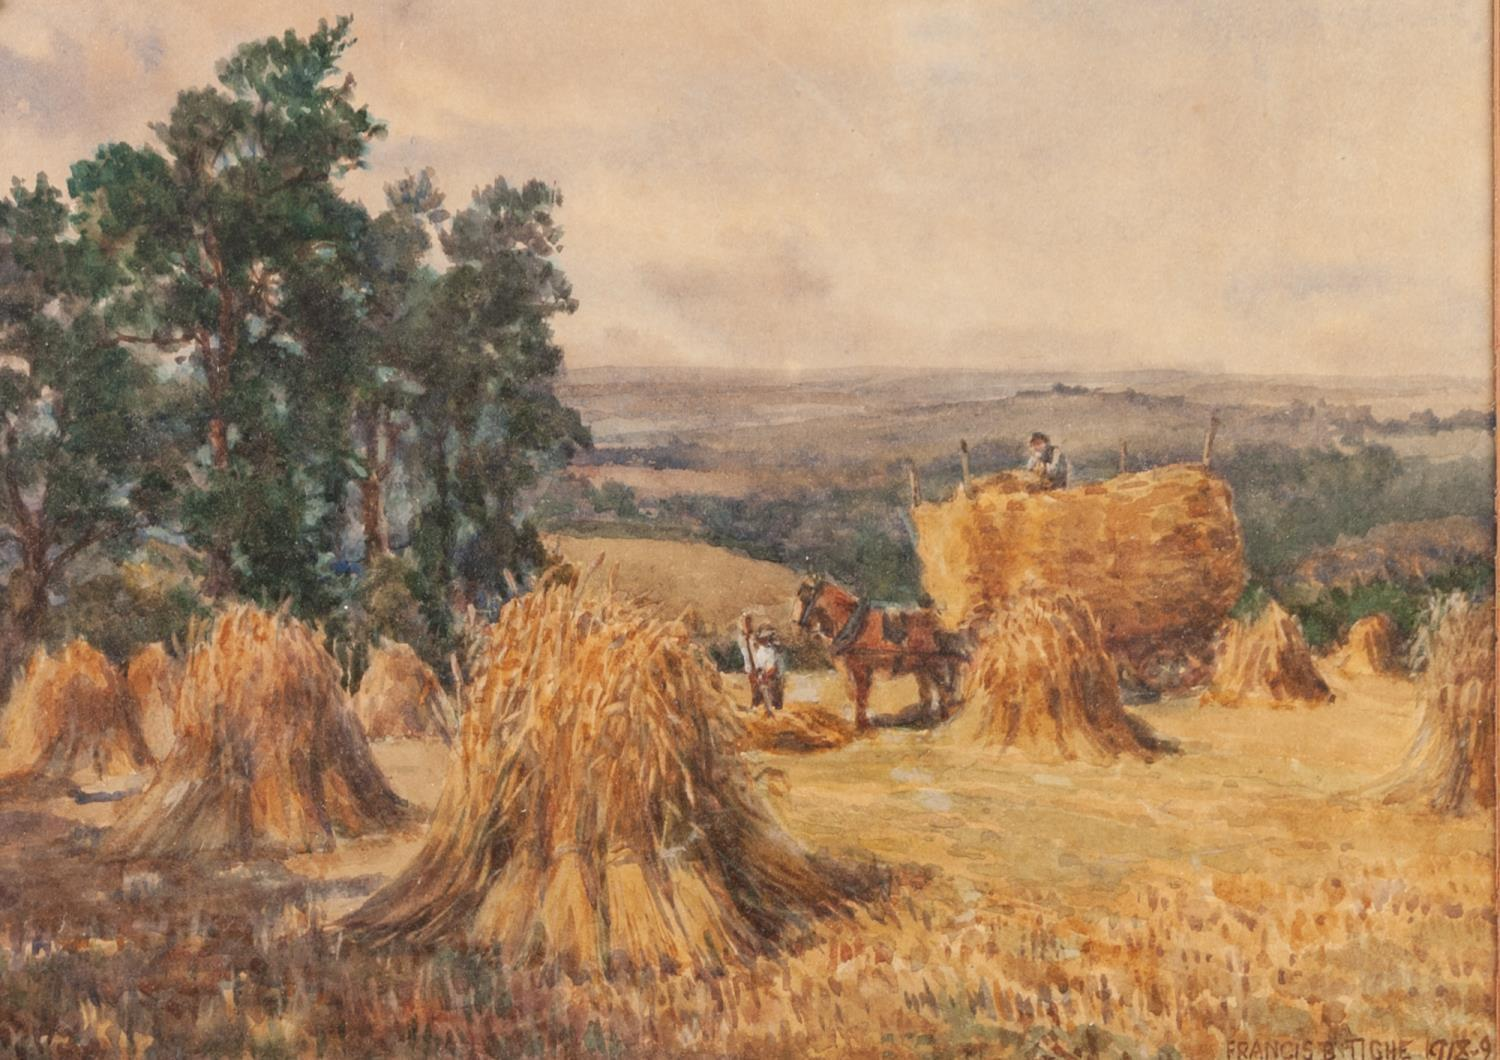 Lot 182 - FRANCIS BROWN TIGHE (c. 1885-1926) PAIR OF WATERCOLOUR DRAWINGS Harvesting scenes with figures and